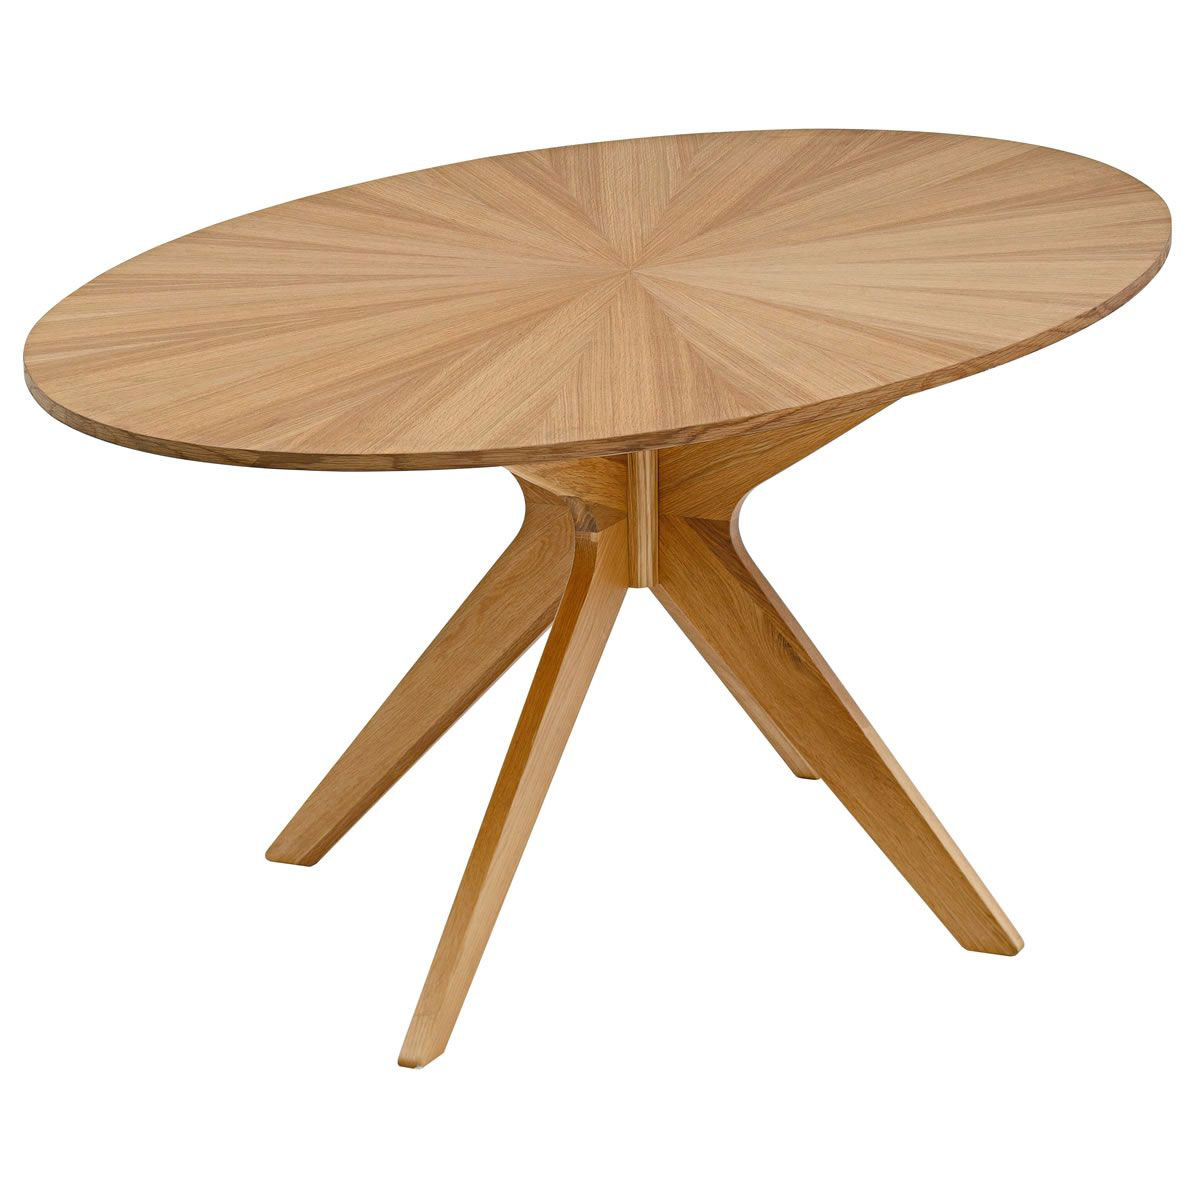 Double crank oval dining table at high fashion home industrial chic -  Omni Oval Dining Table From Domayne